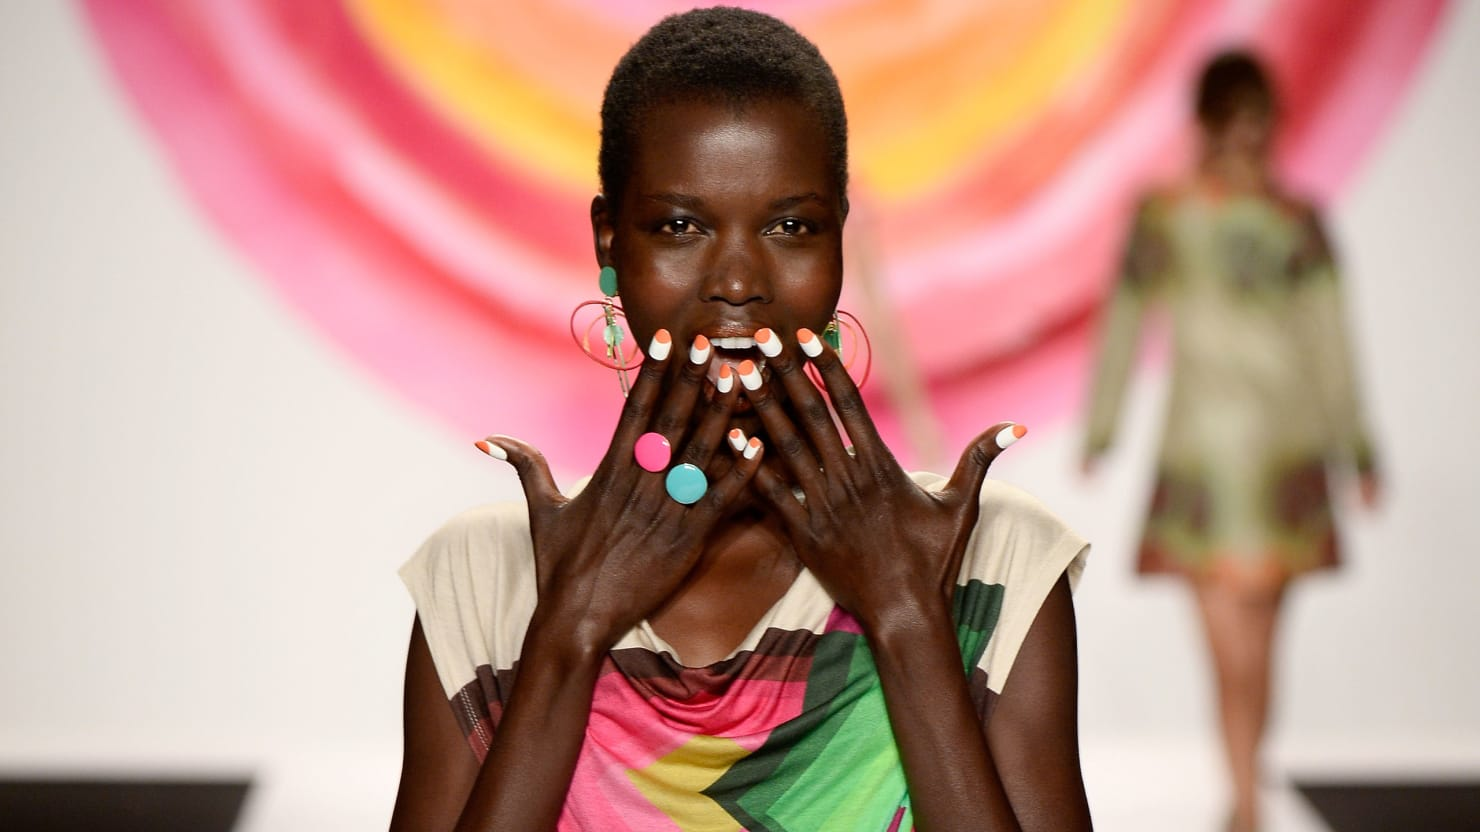 Nykhor Paul, 'Tired of Apologizing' for Her Blackness, Fights Fashion Racism